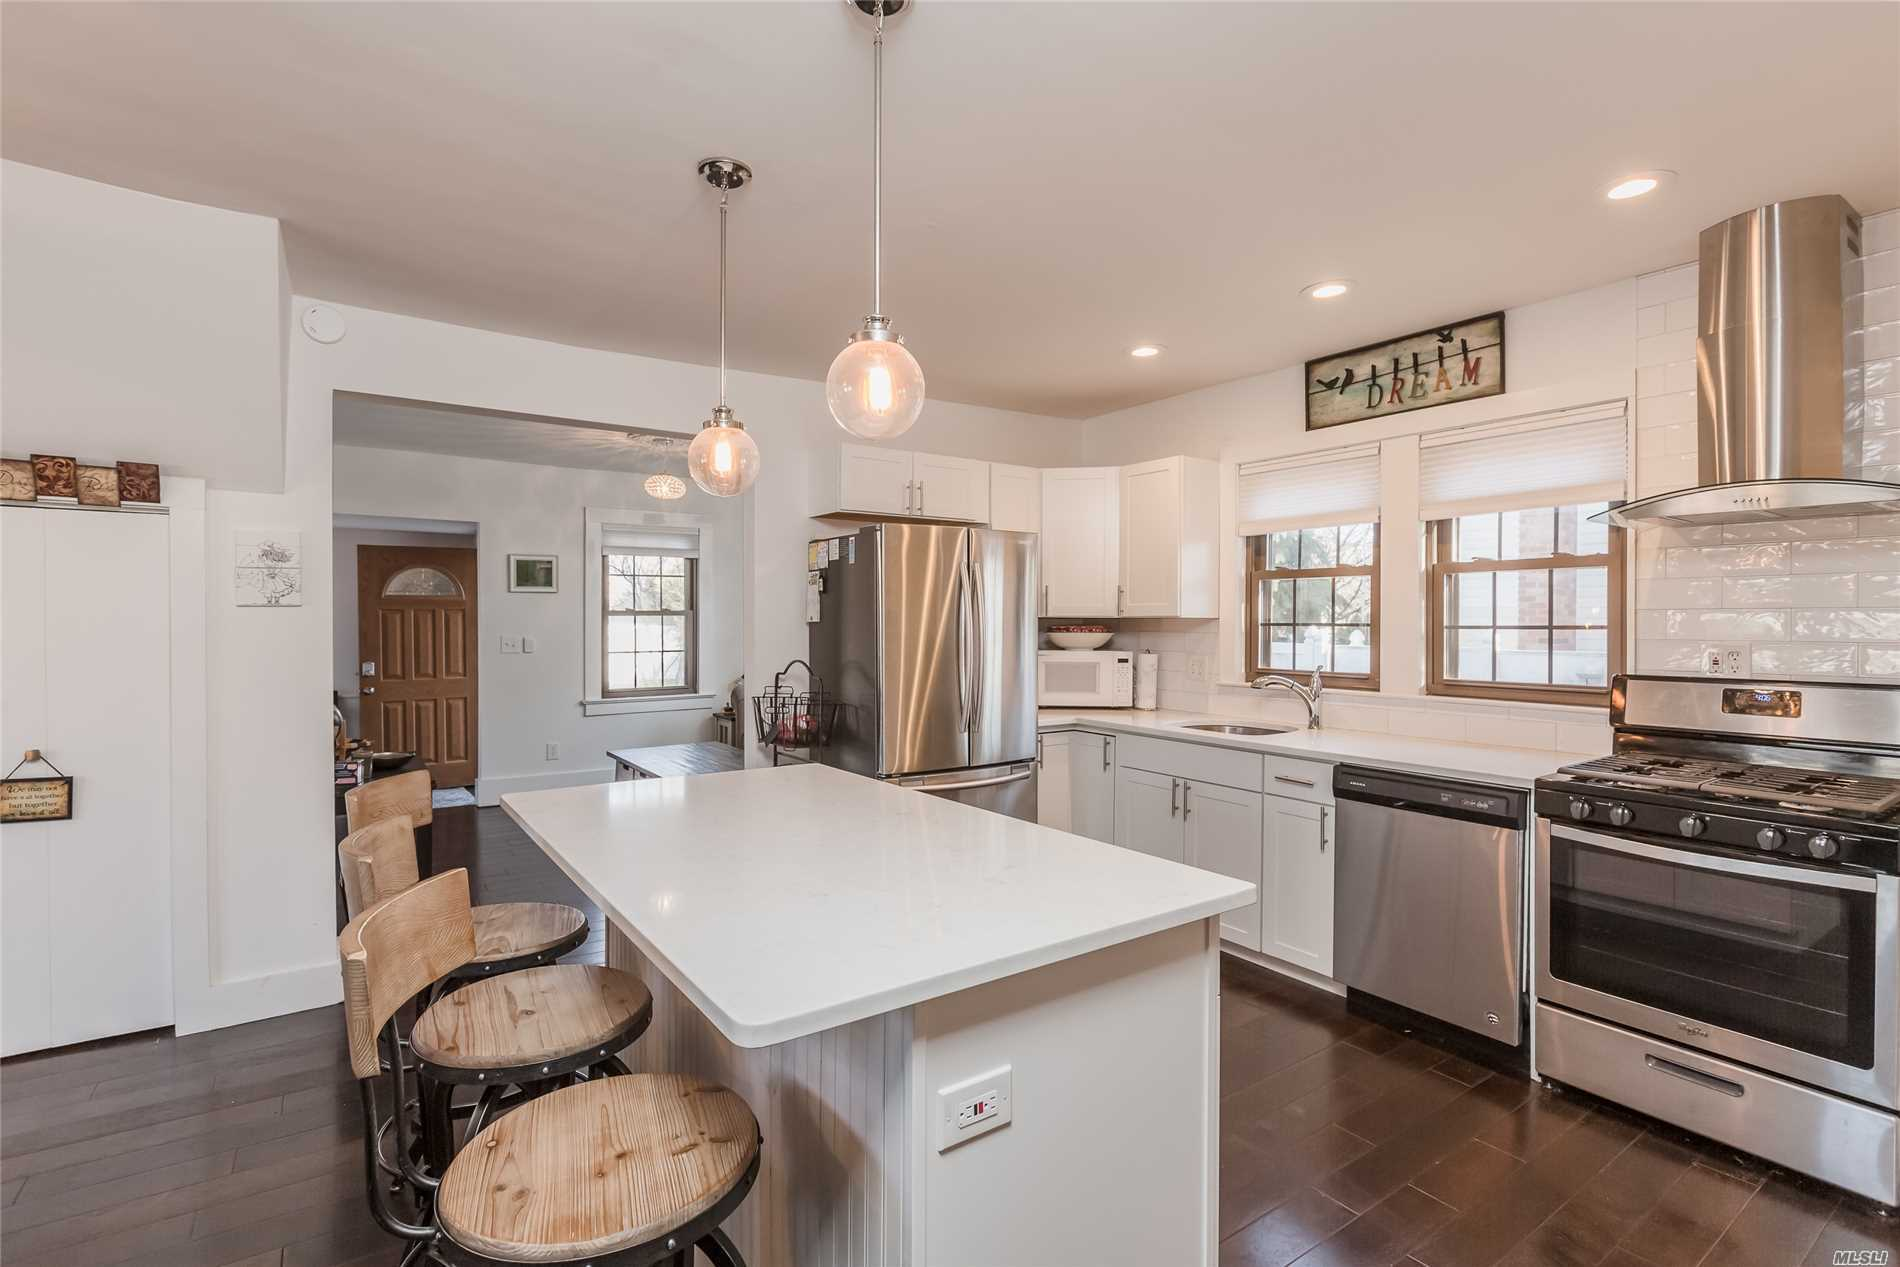 Move In Ready Recently Remodeled Beautiful Home In Northport-Enpt Sd!! Low Taxes Only $4228.88 W/Basic Star. Entry Leads To Airy Floor Plan W/Hardwood Flooring. Eik W/White Shaker Cabs, Ss Appl, Island & Quartz Countertops!! Stunning Bathrooms-Unwind In Marble Bath W/Glass Of Wine While Soaking In Your Claw Foot Tub! Ductless Air Conditioner. Det Oversized 2 Car Garage W/80 Amp Electric/220V &Storage Above! Low Maintenance Living Close To Npt Village, Restaurants, Beaches, Marina, Train, Parkways